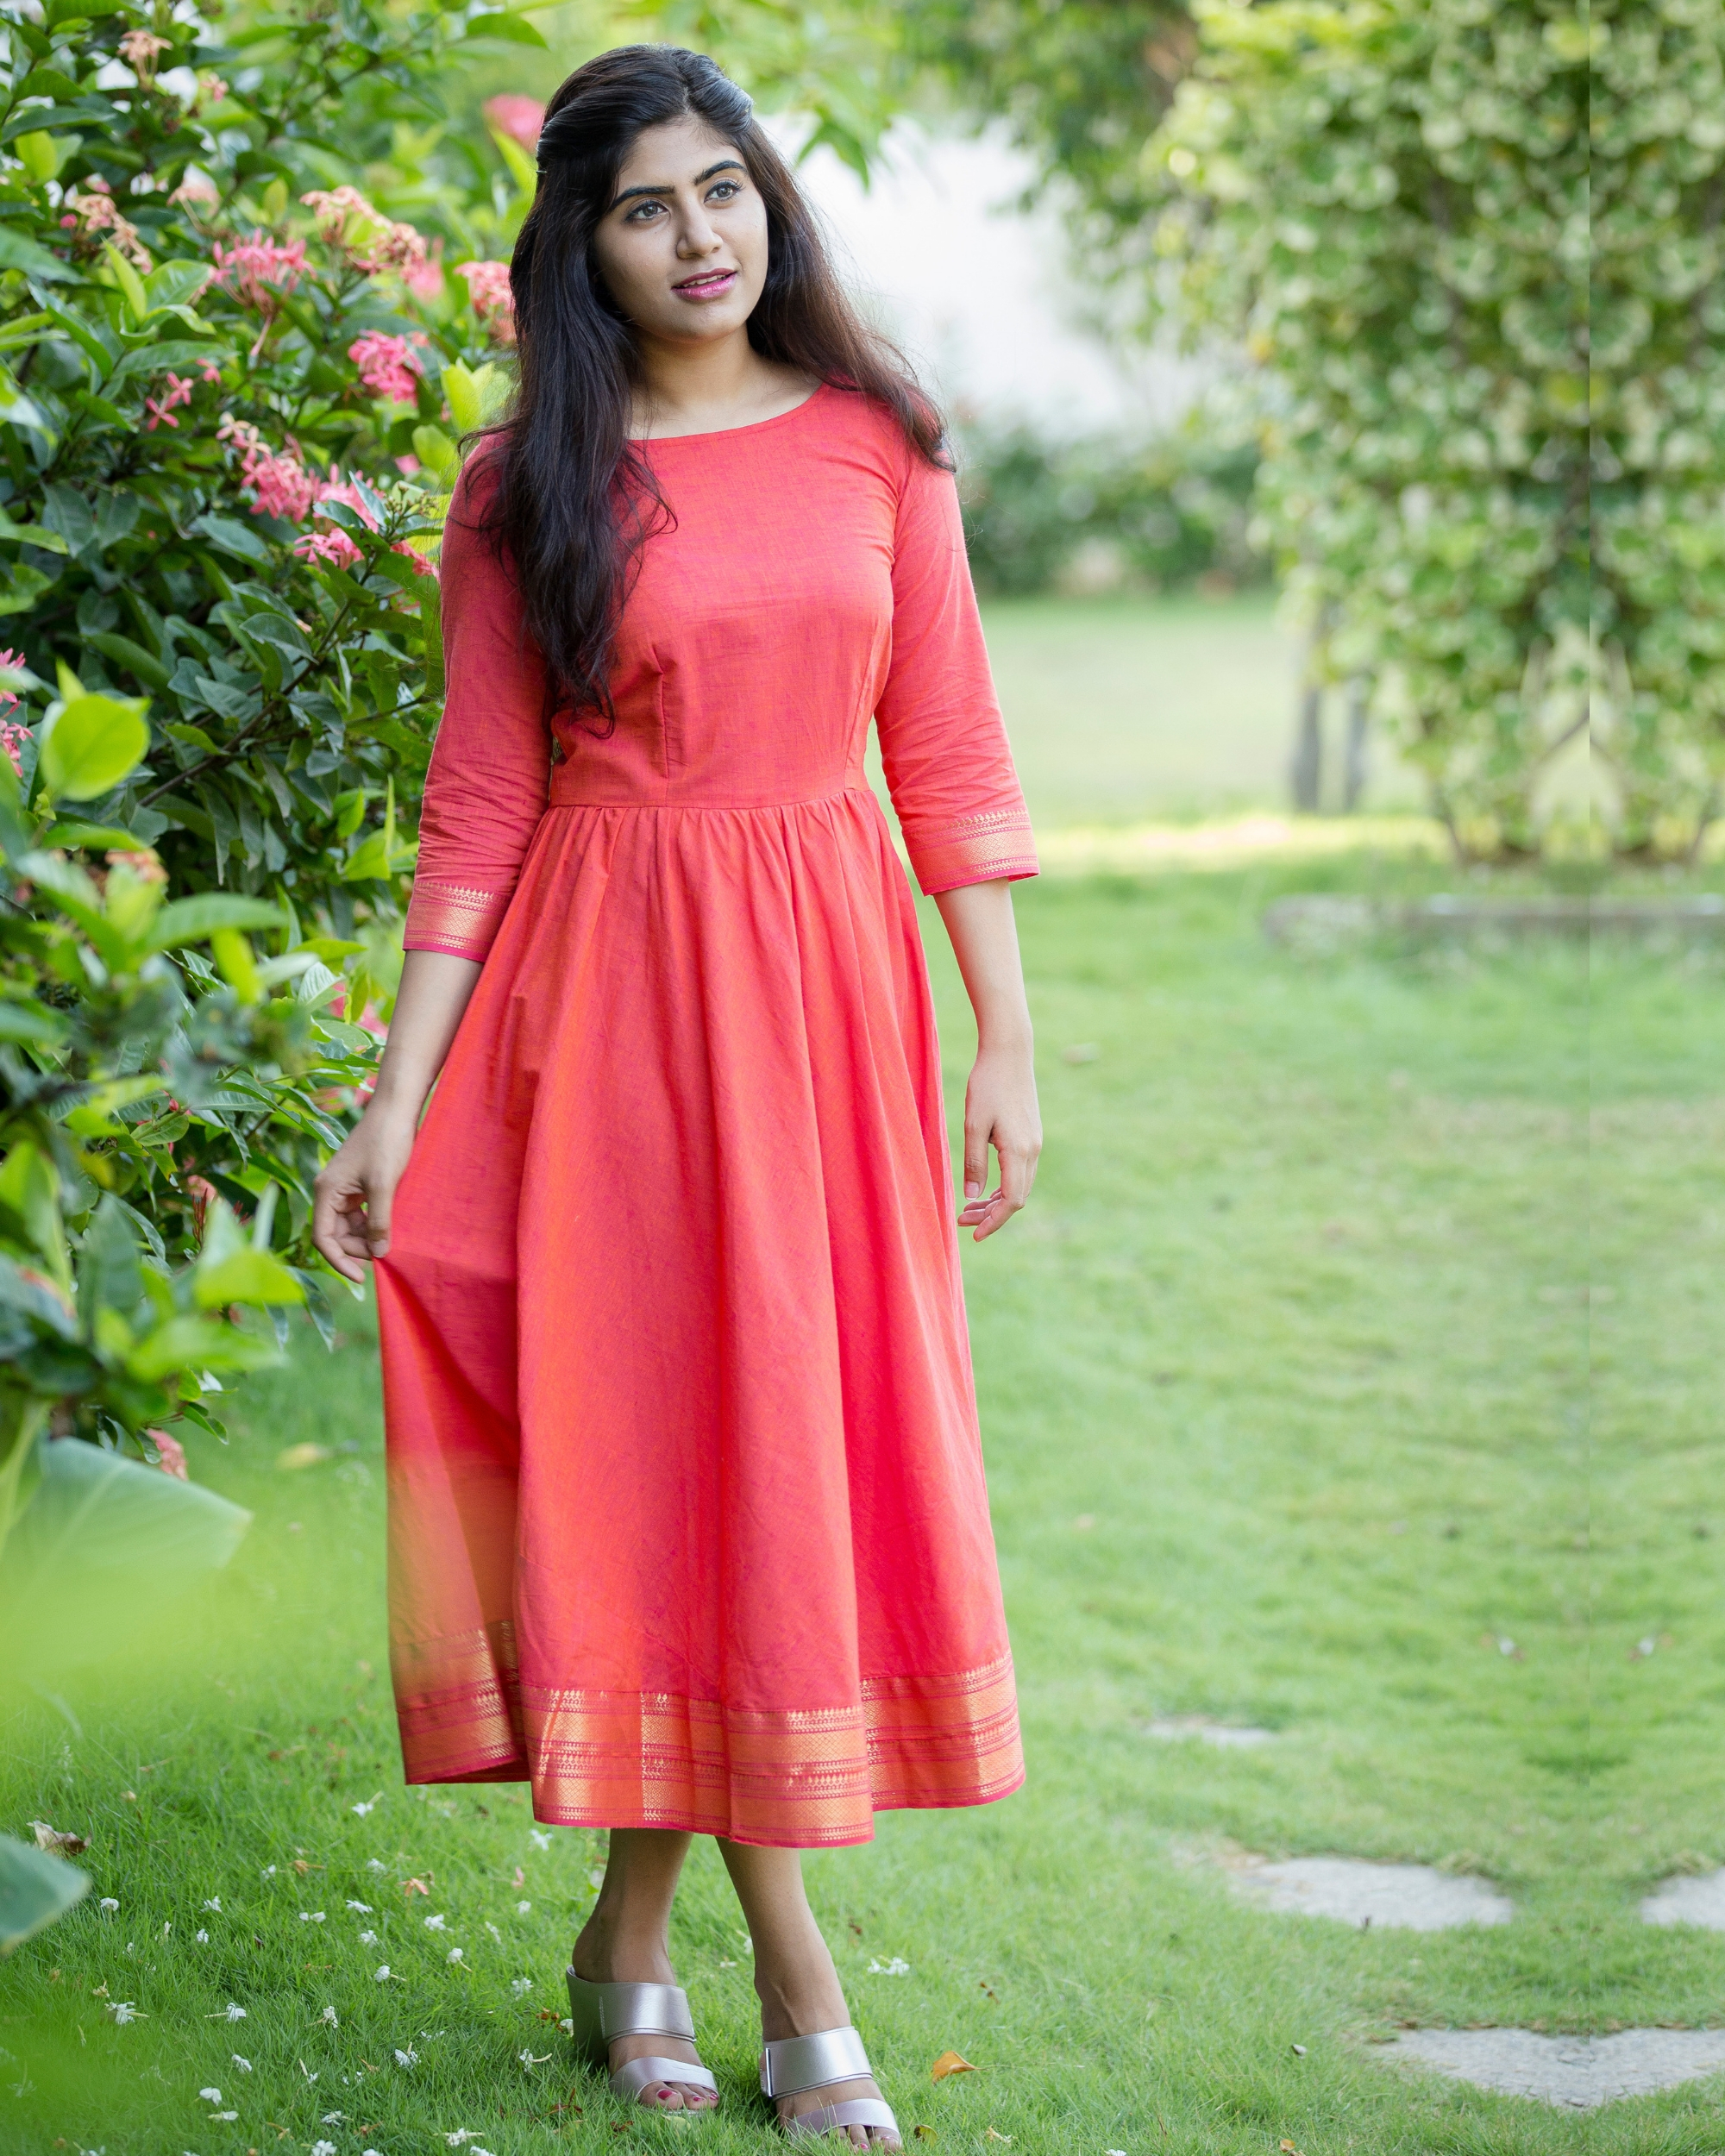 Peach zari detailed dress